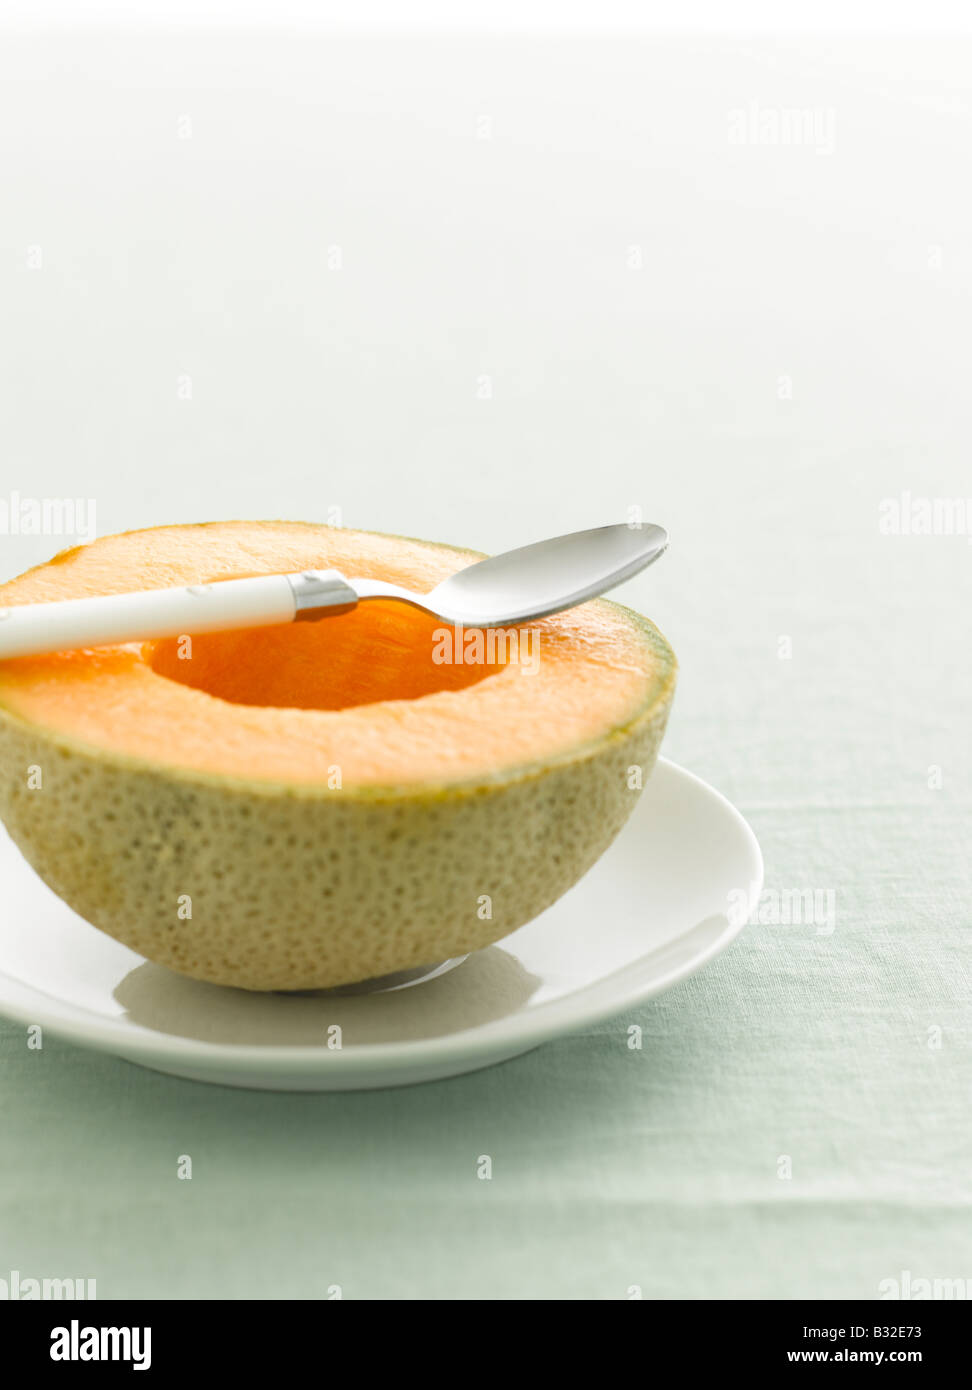 Melon cantaloup, selective focus Photo Stock